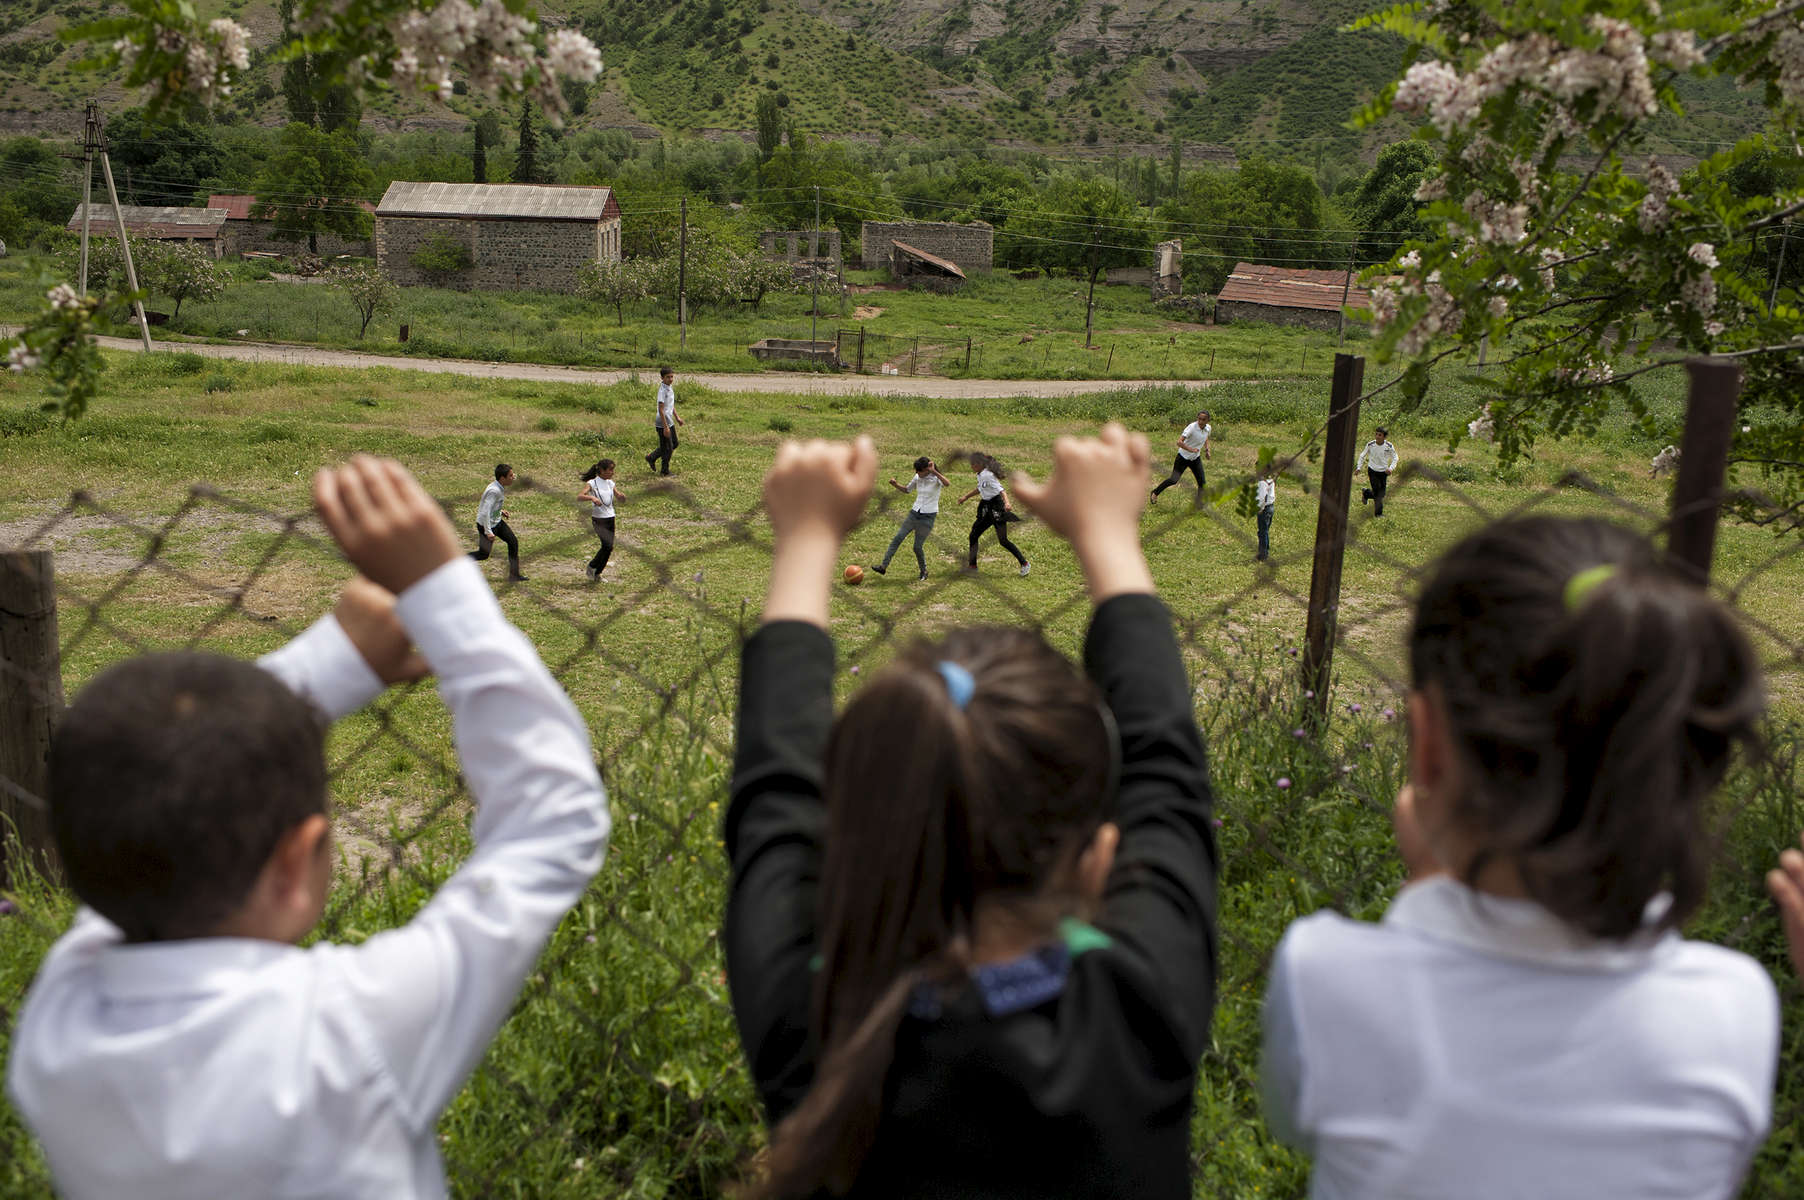 Children attend school in Tsaghkaberd village.  The school serves children from both Tsaghkaberd and Maratuk villages, but the road between them was, until it was very recently cleared by HALO Trust, heavily mined - making the journey very difficult.